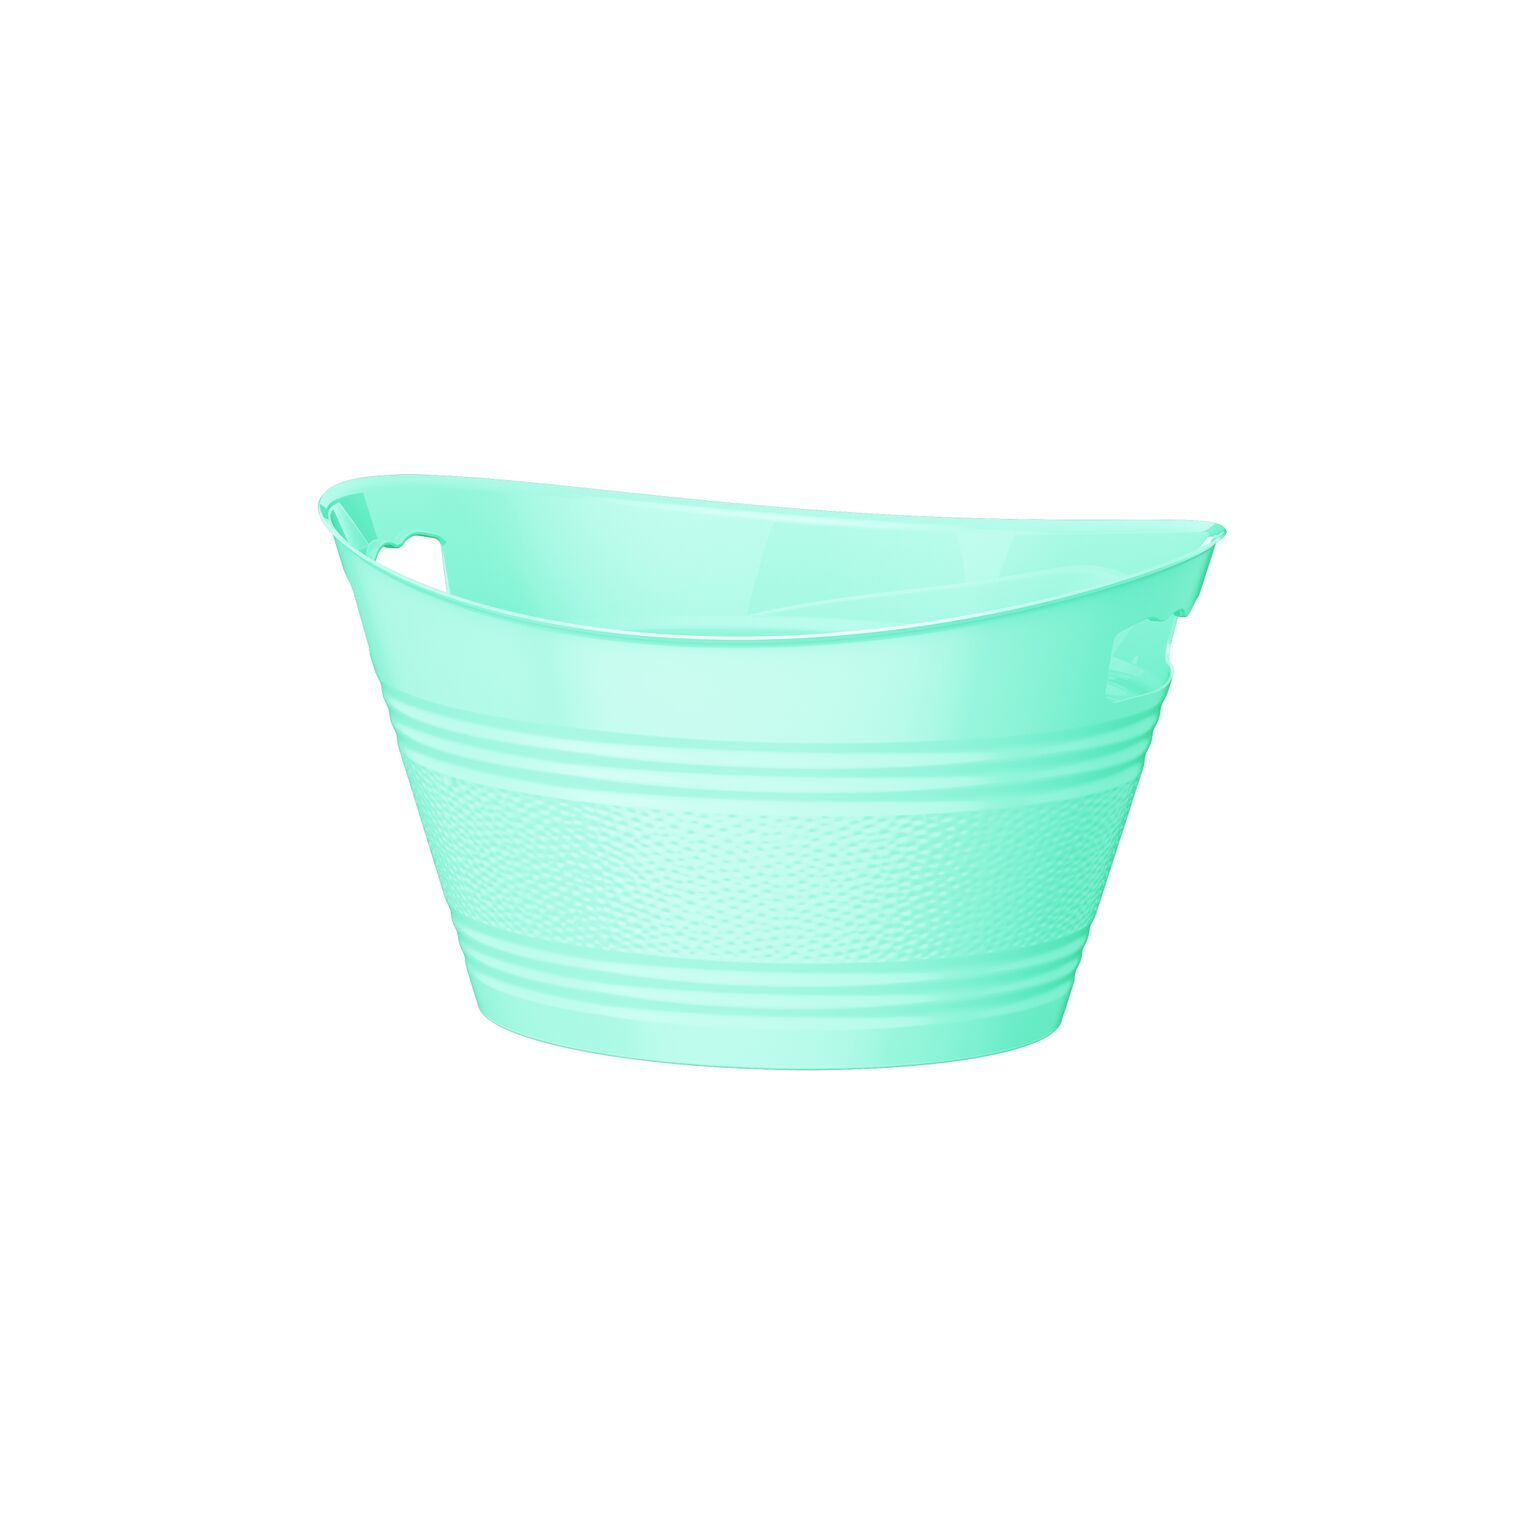 1 Gallon The Bucket Jelly Bean Teal Bucket Gallon Jelly Beans